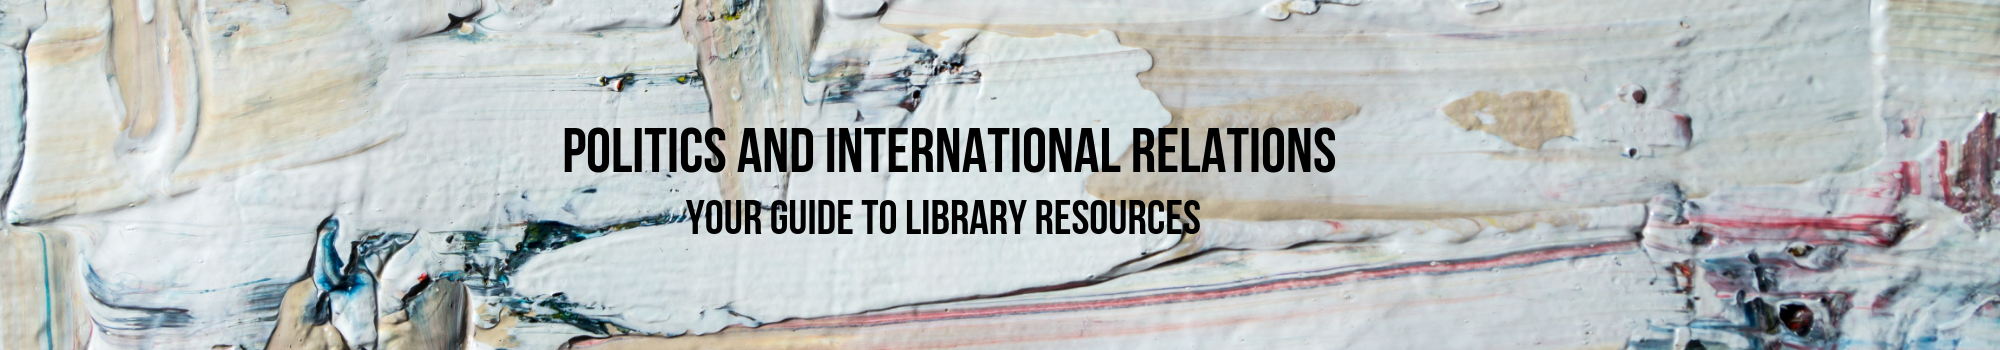 Politics and international relations. Your guide to library resources.